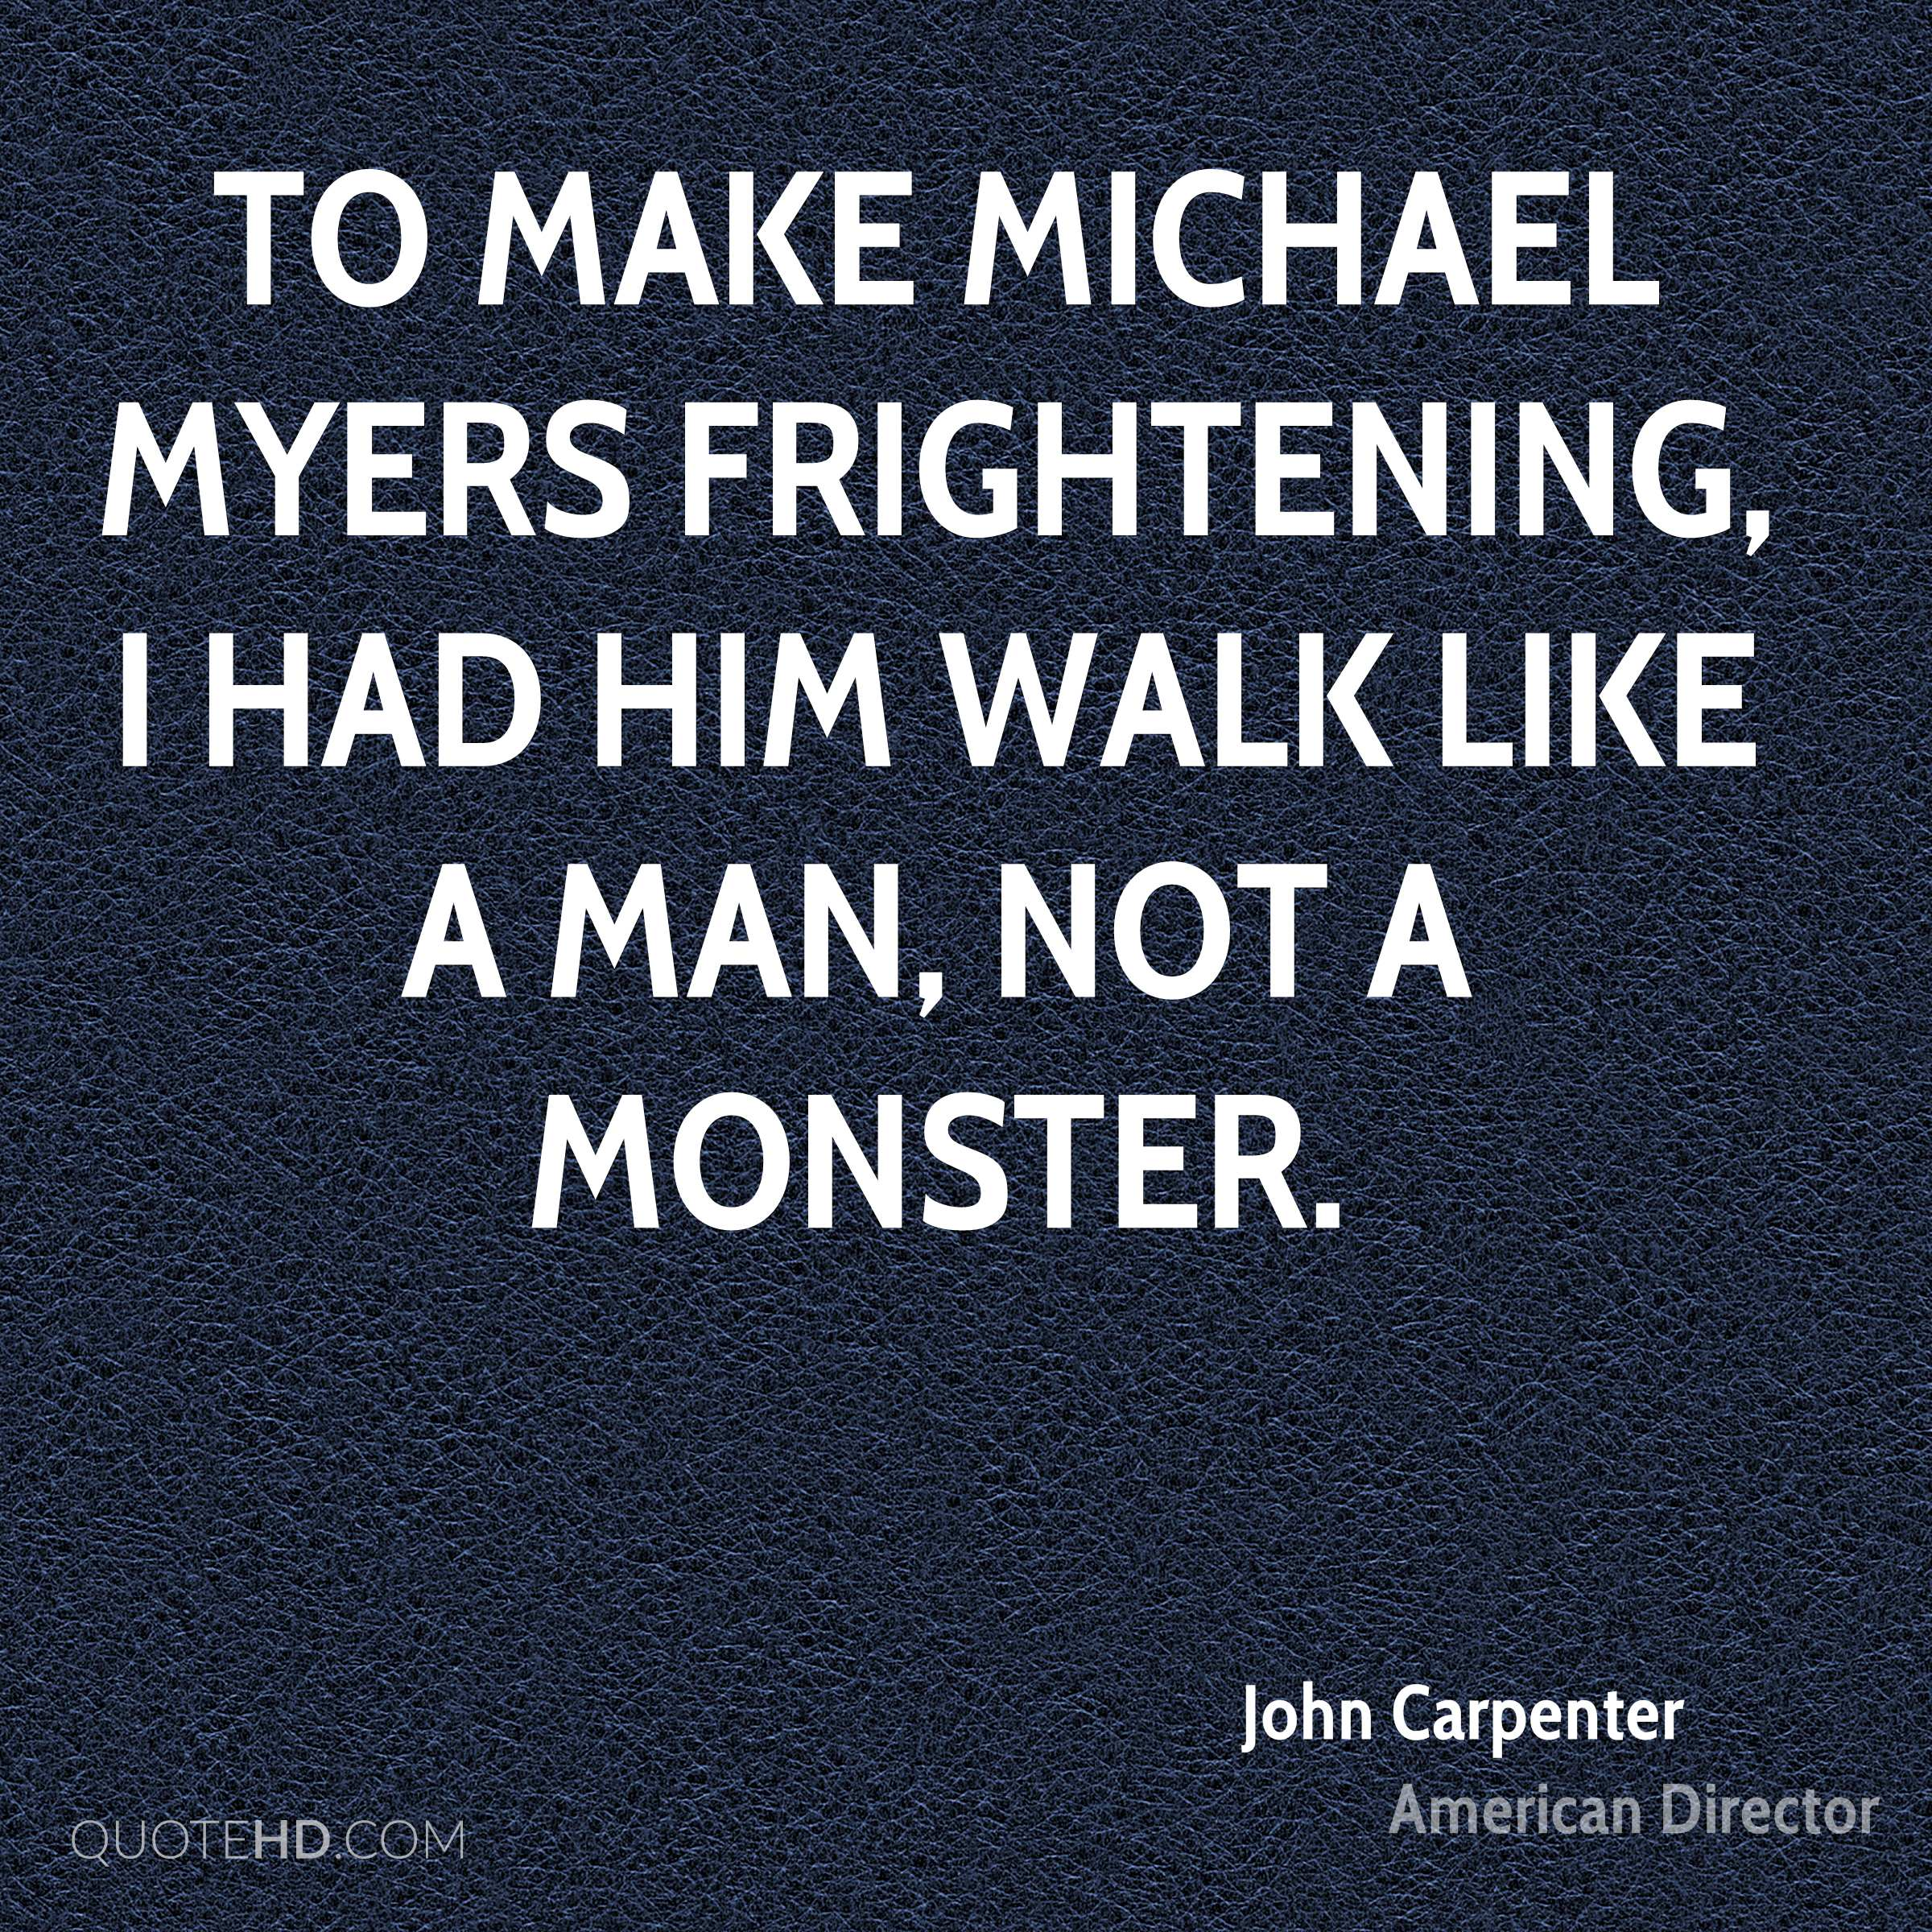 To make Michael Myers frightening, I had him walk like a man, not a monster.